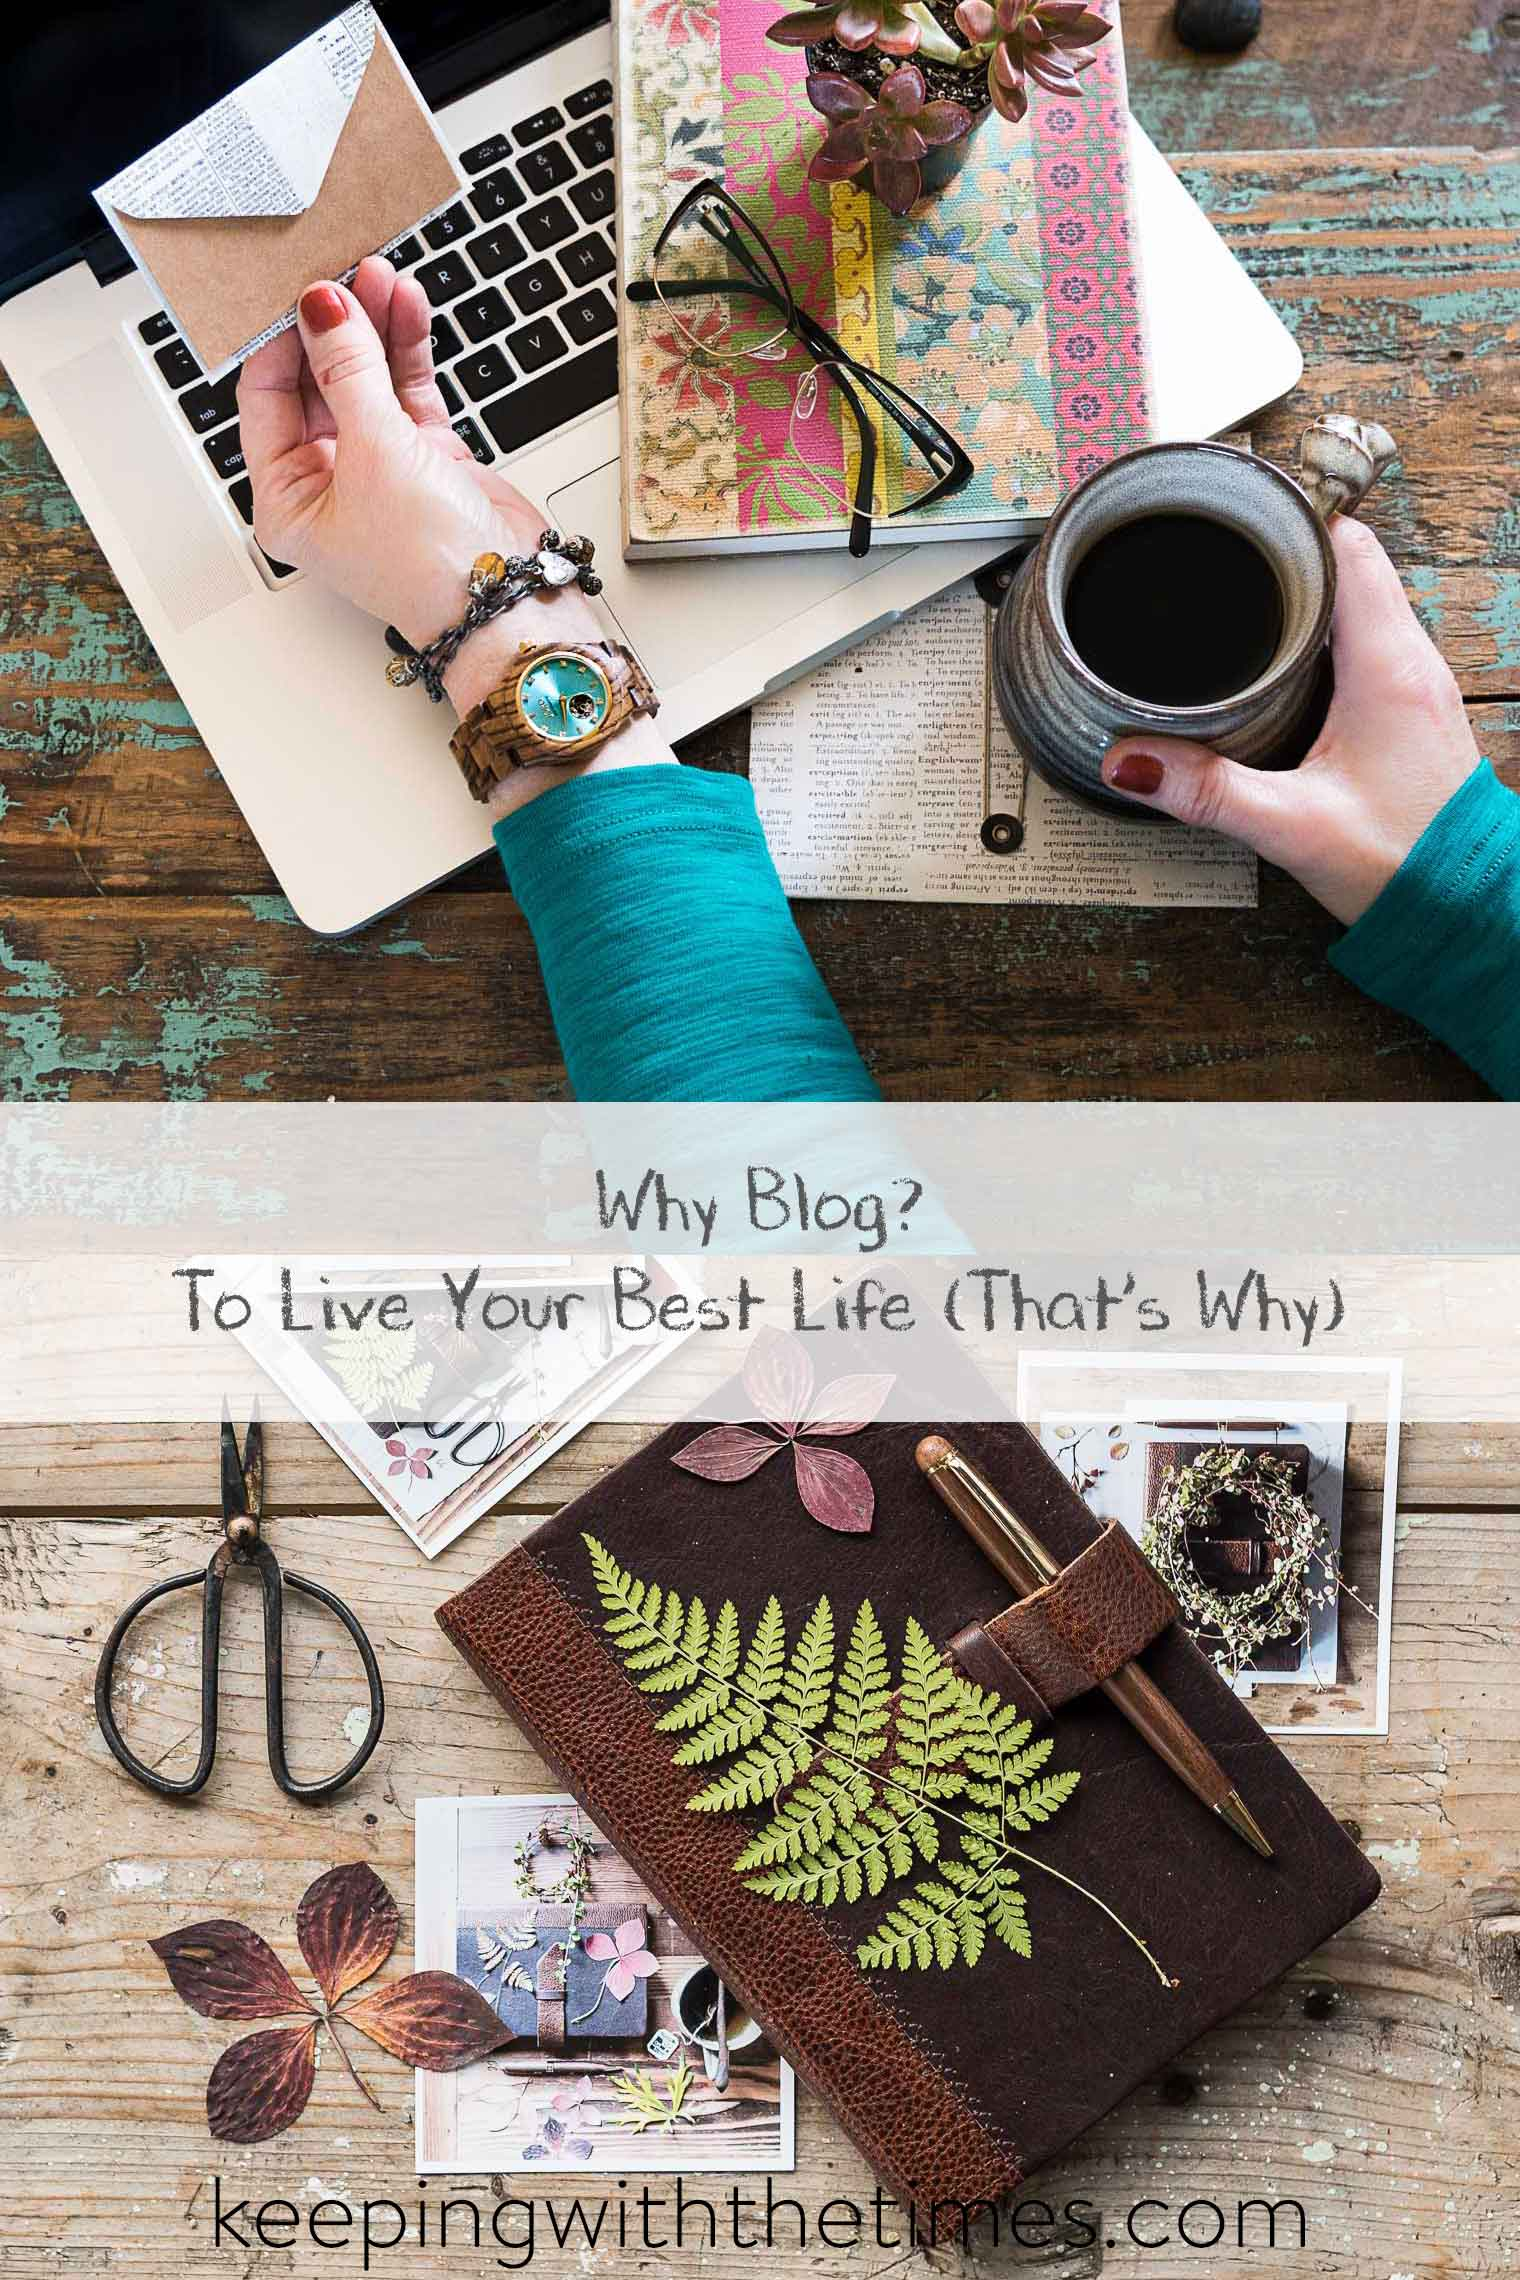 Why would I start a blog? What could I possibly have to offer that would be any different from the thousands upon thousands of other blogs out there in the world?